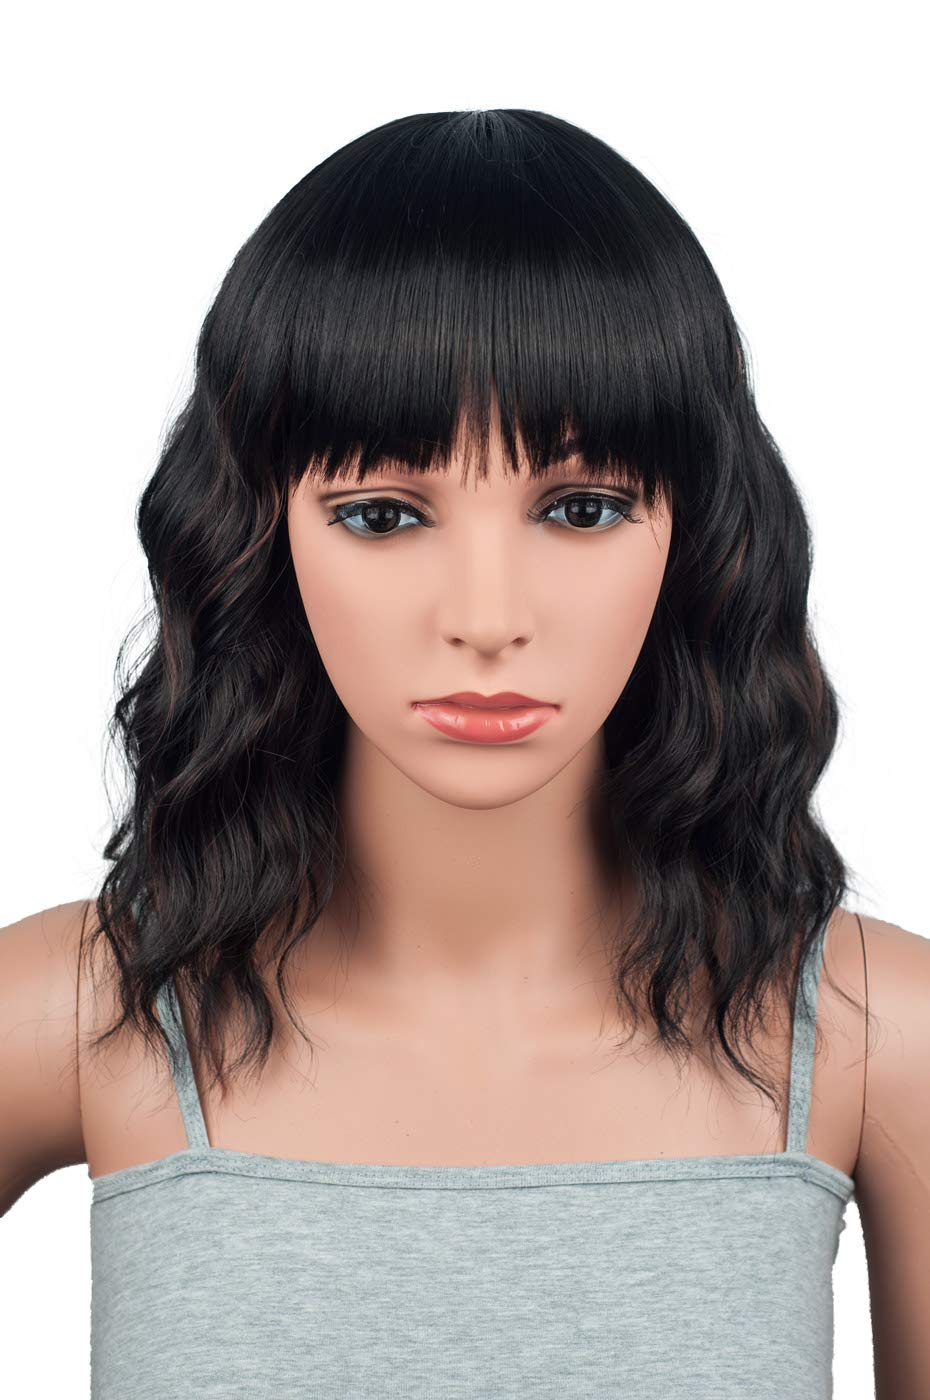 Natural Looking Medium Long Wavy Wigs For Black Women Short Bob Hairstyle  Synthetic Heat Resistant